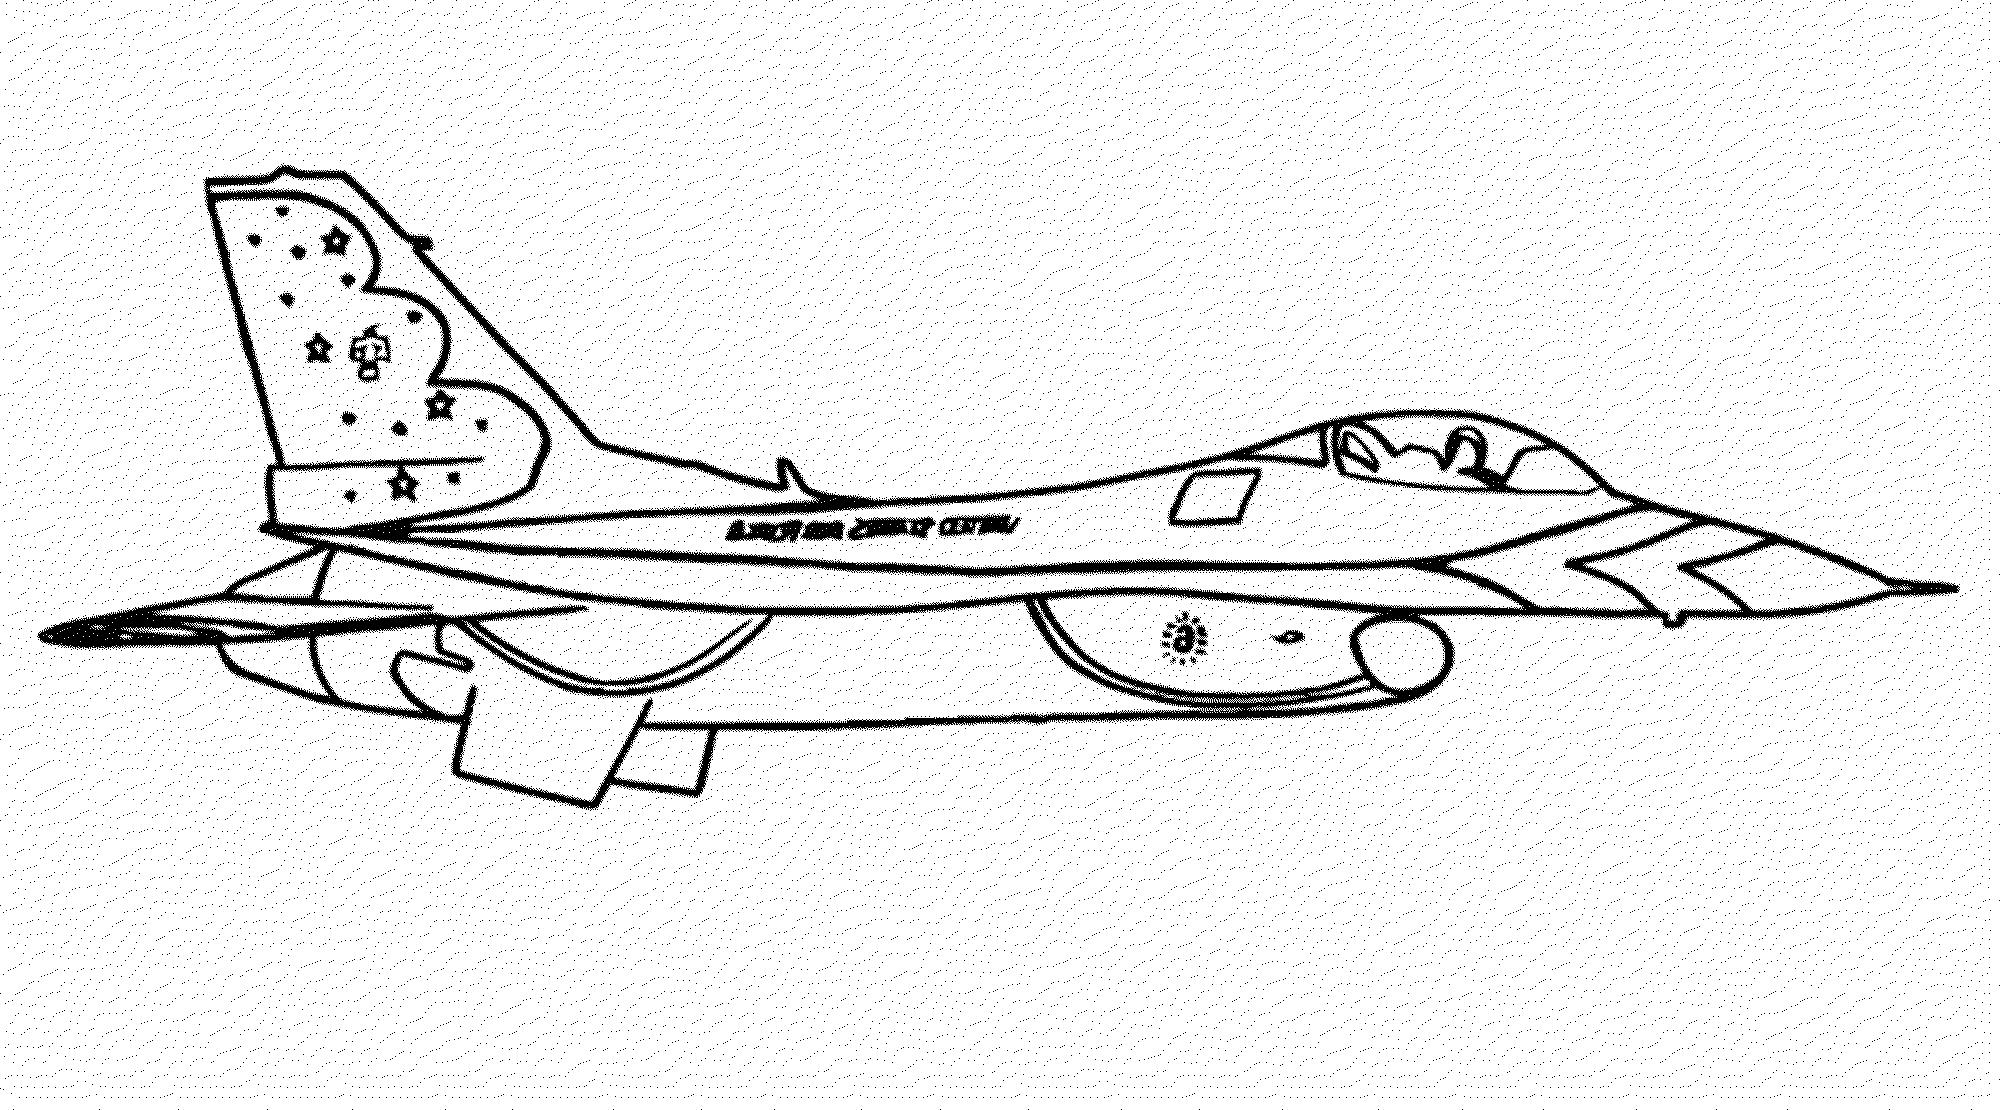 plane coloring sheets print download the sophisticated transportation of plane sheets coloring